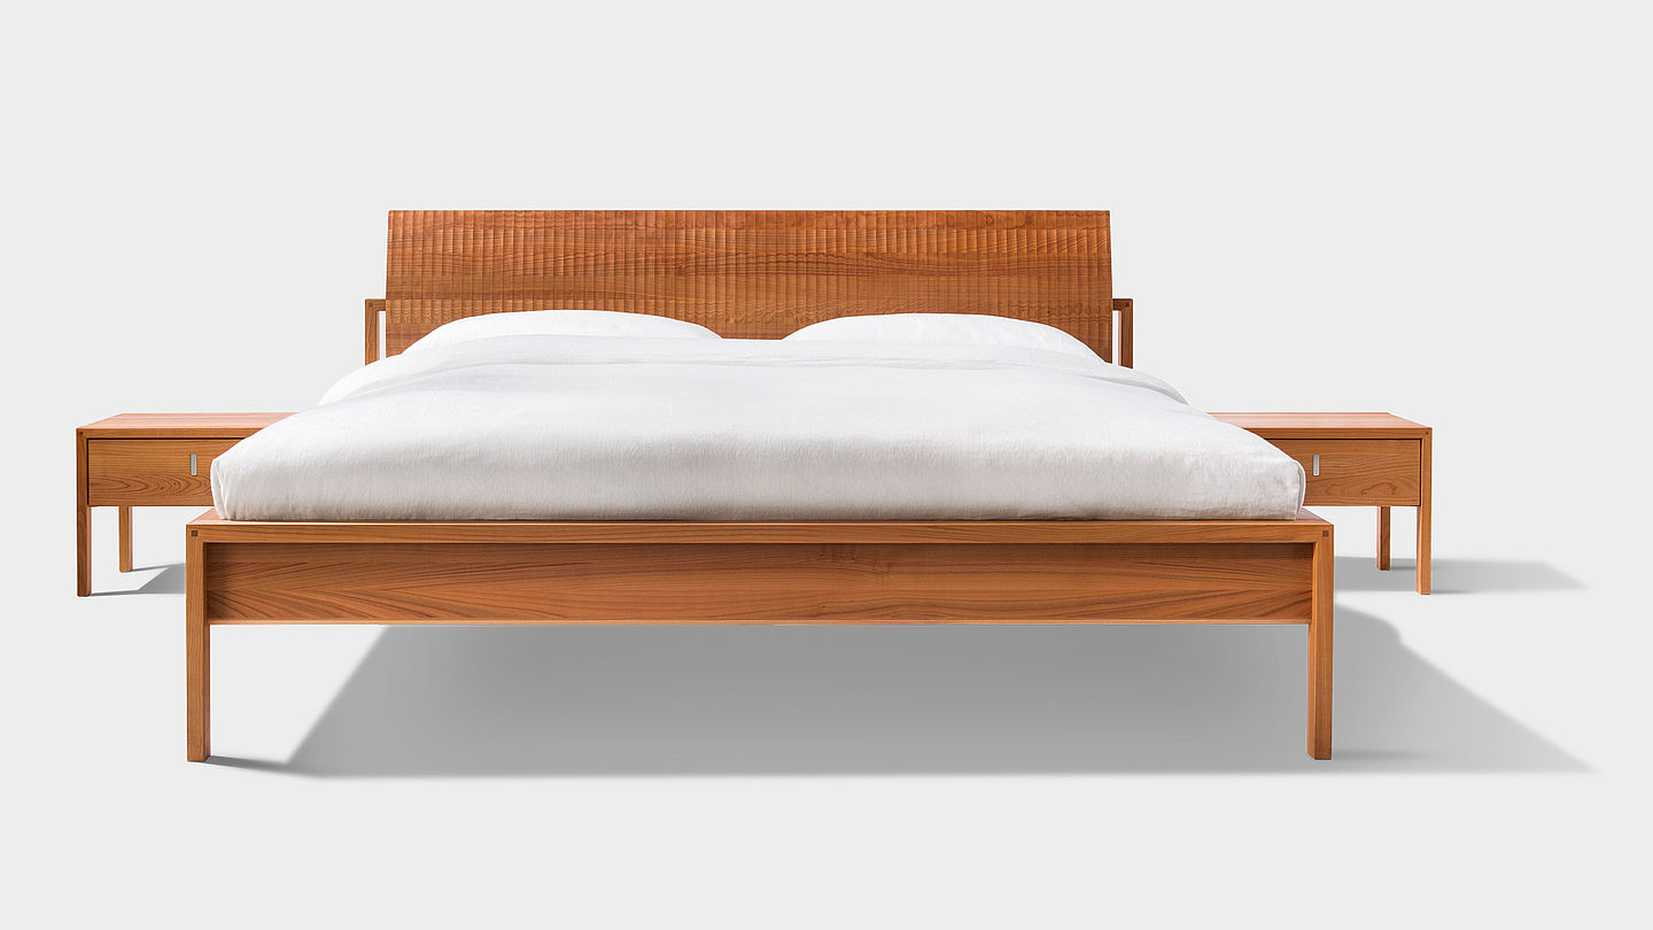 Valore Bed by Team 7 product image 2